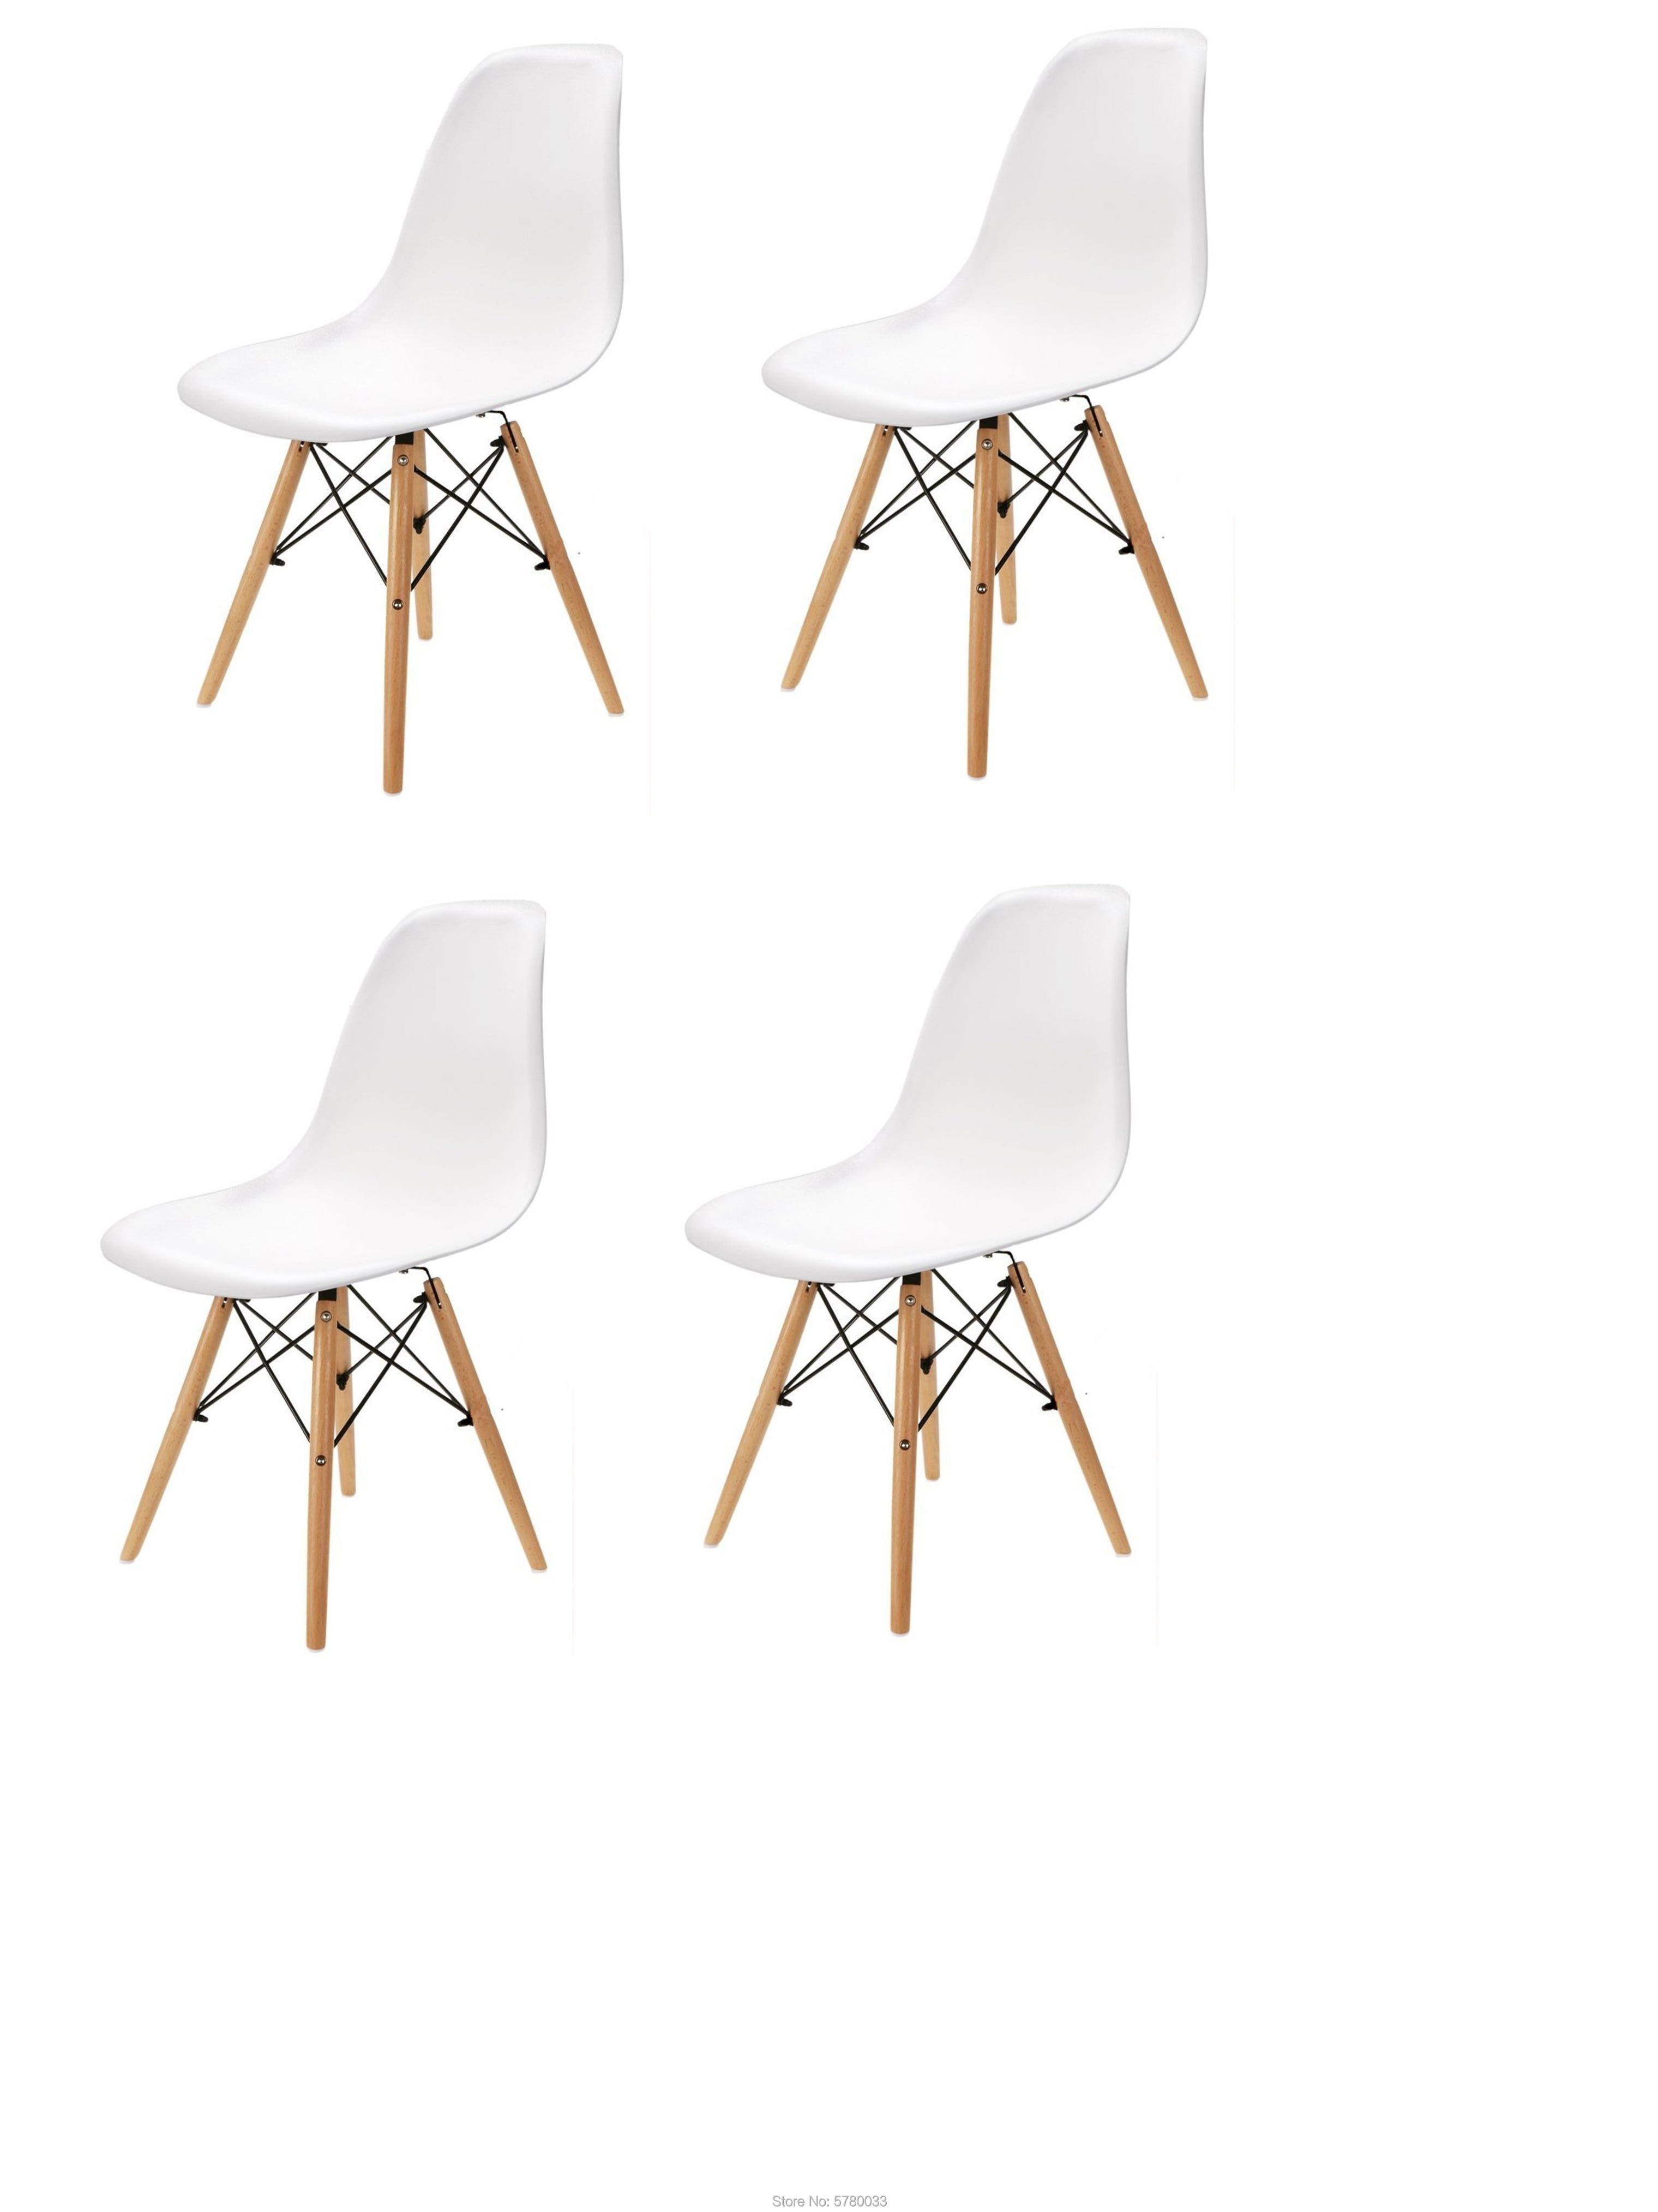 A set of four Scandinavian medieval style dining chairs with solid wood foot furniture, suitable for living room, dining room